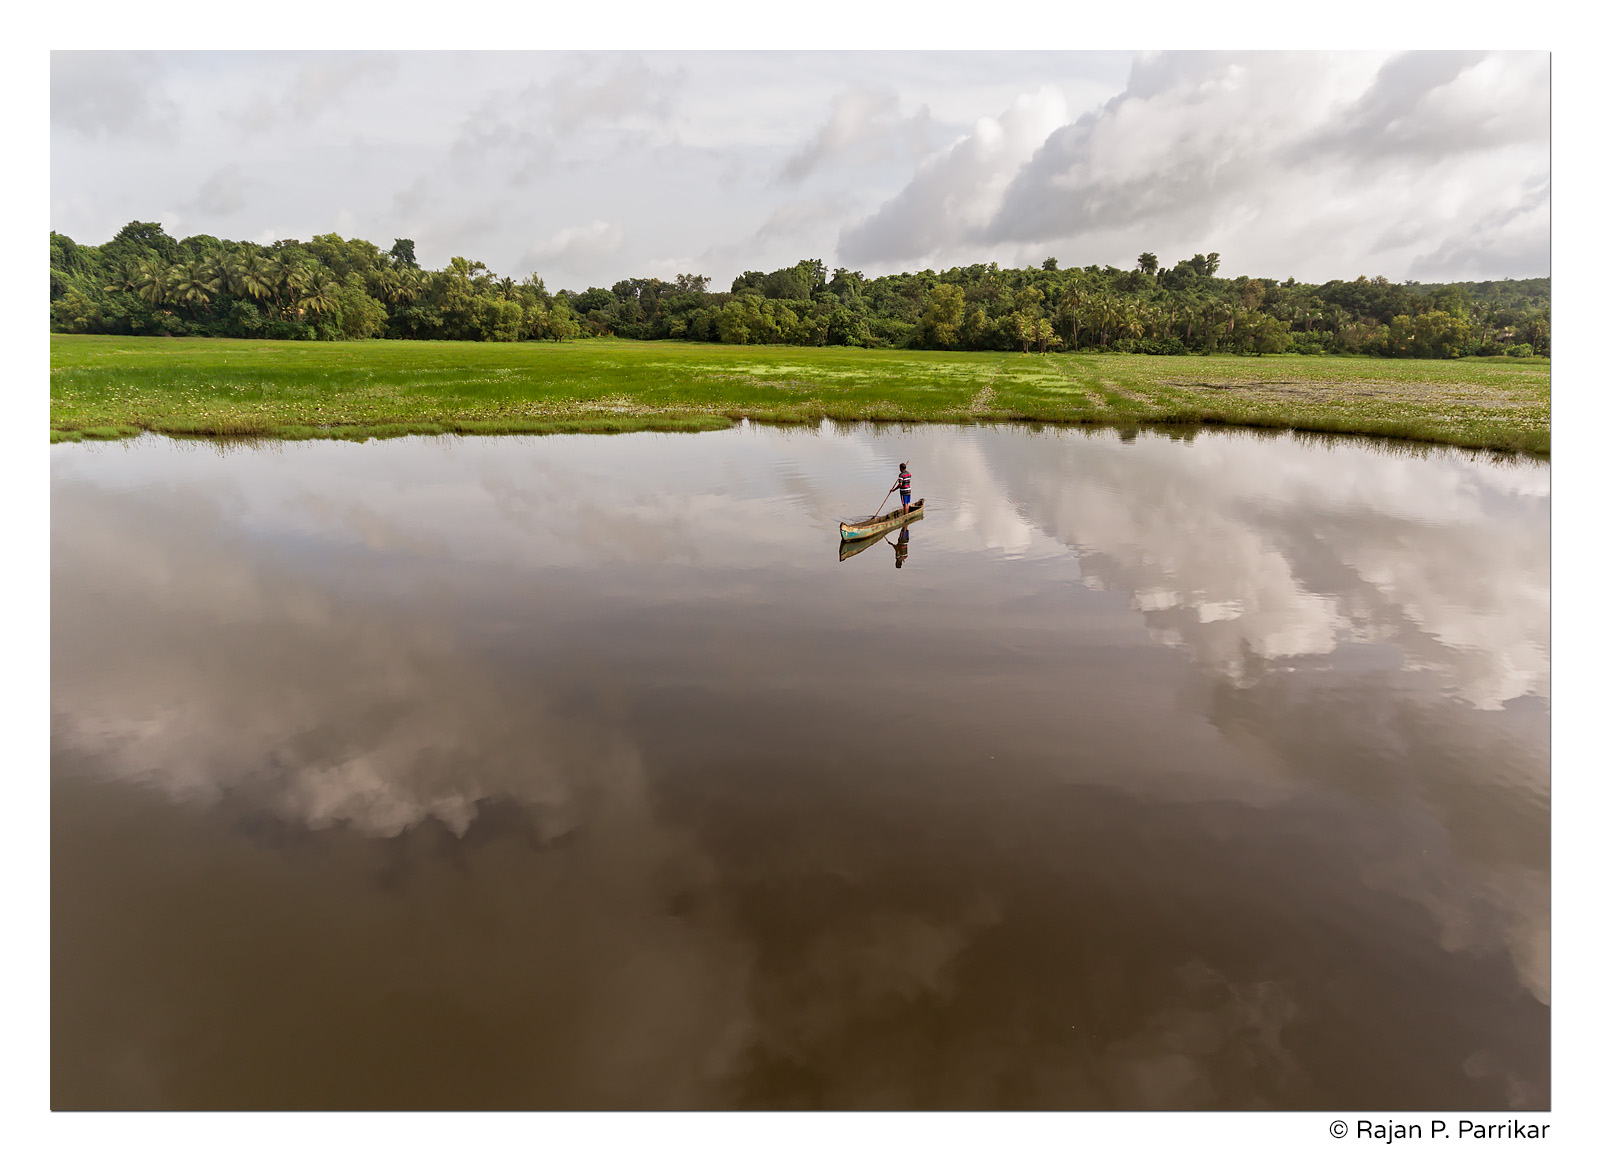 Fisherman in Murdi ward of Narve, Goa